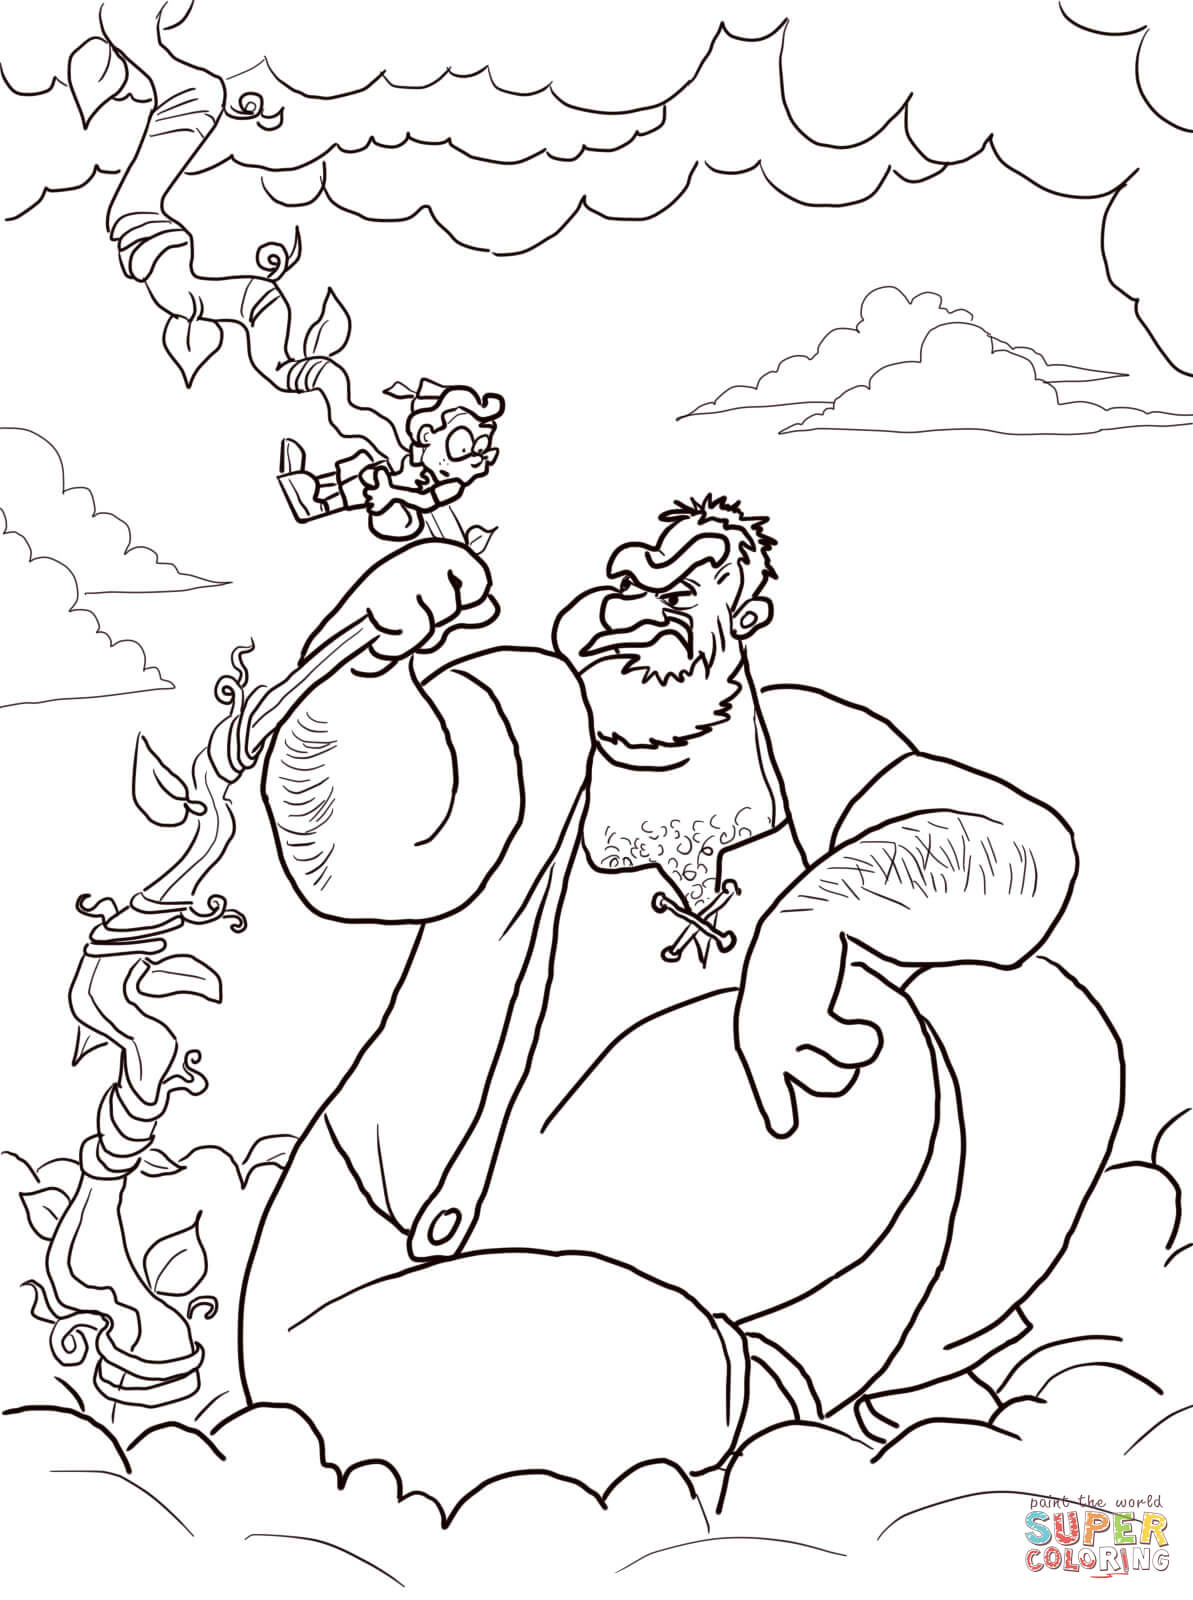 Jack And The Beanstalk Giant Coloring Page